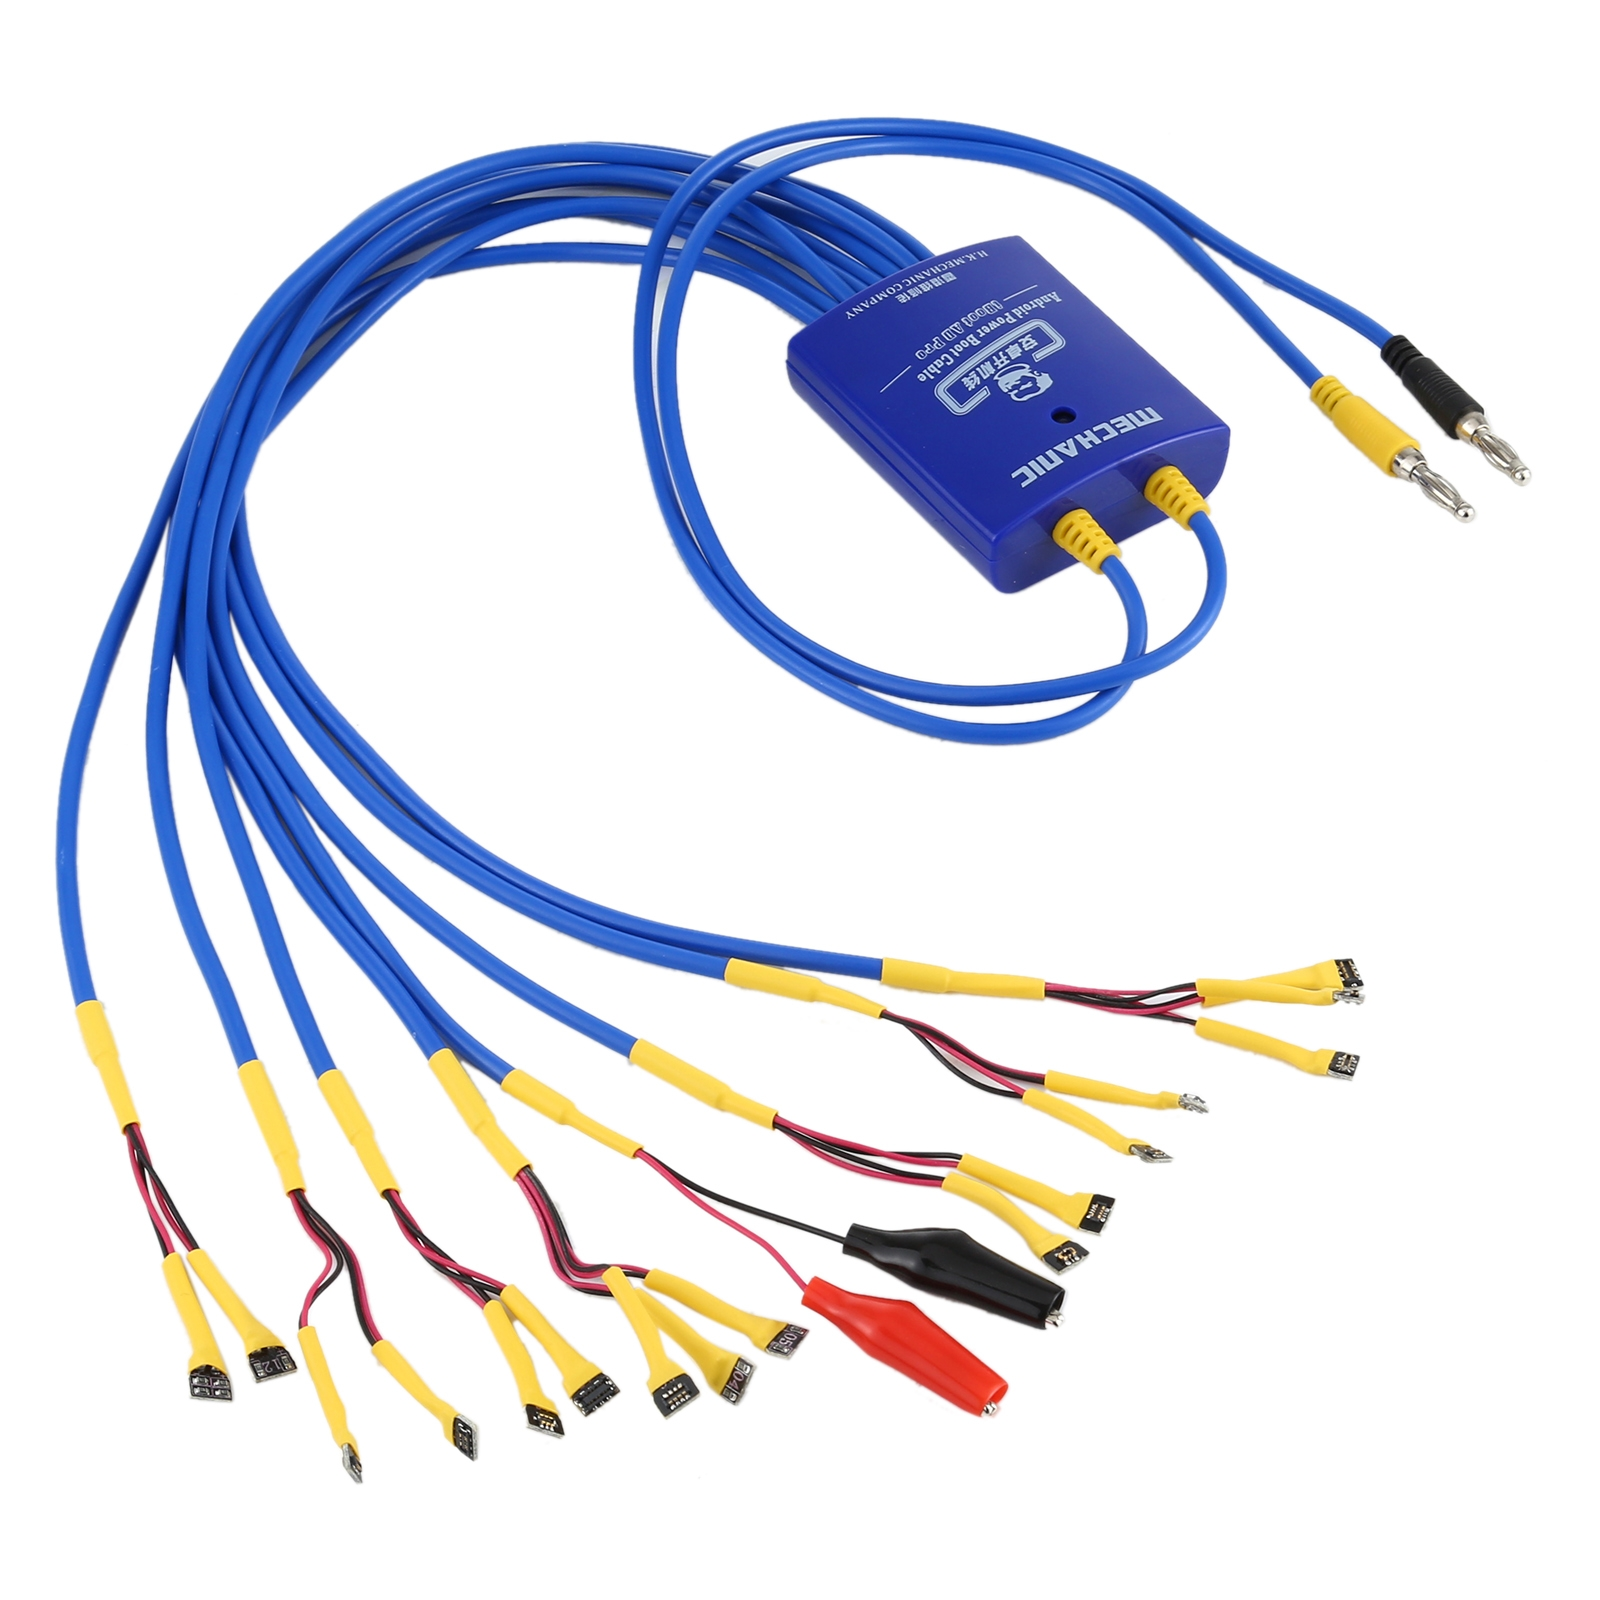 Mechanic iBoot AD Pro Power Supply Test Cable for Android